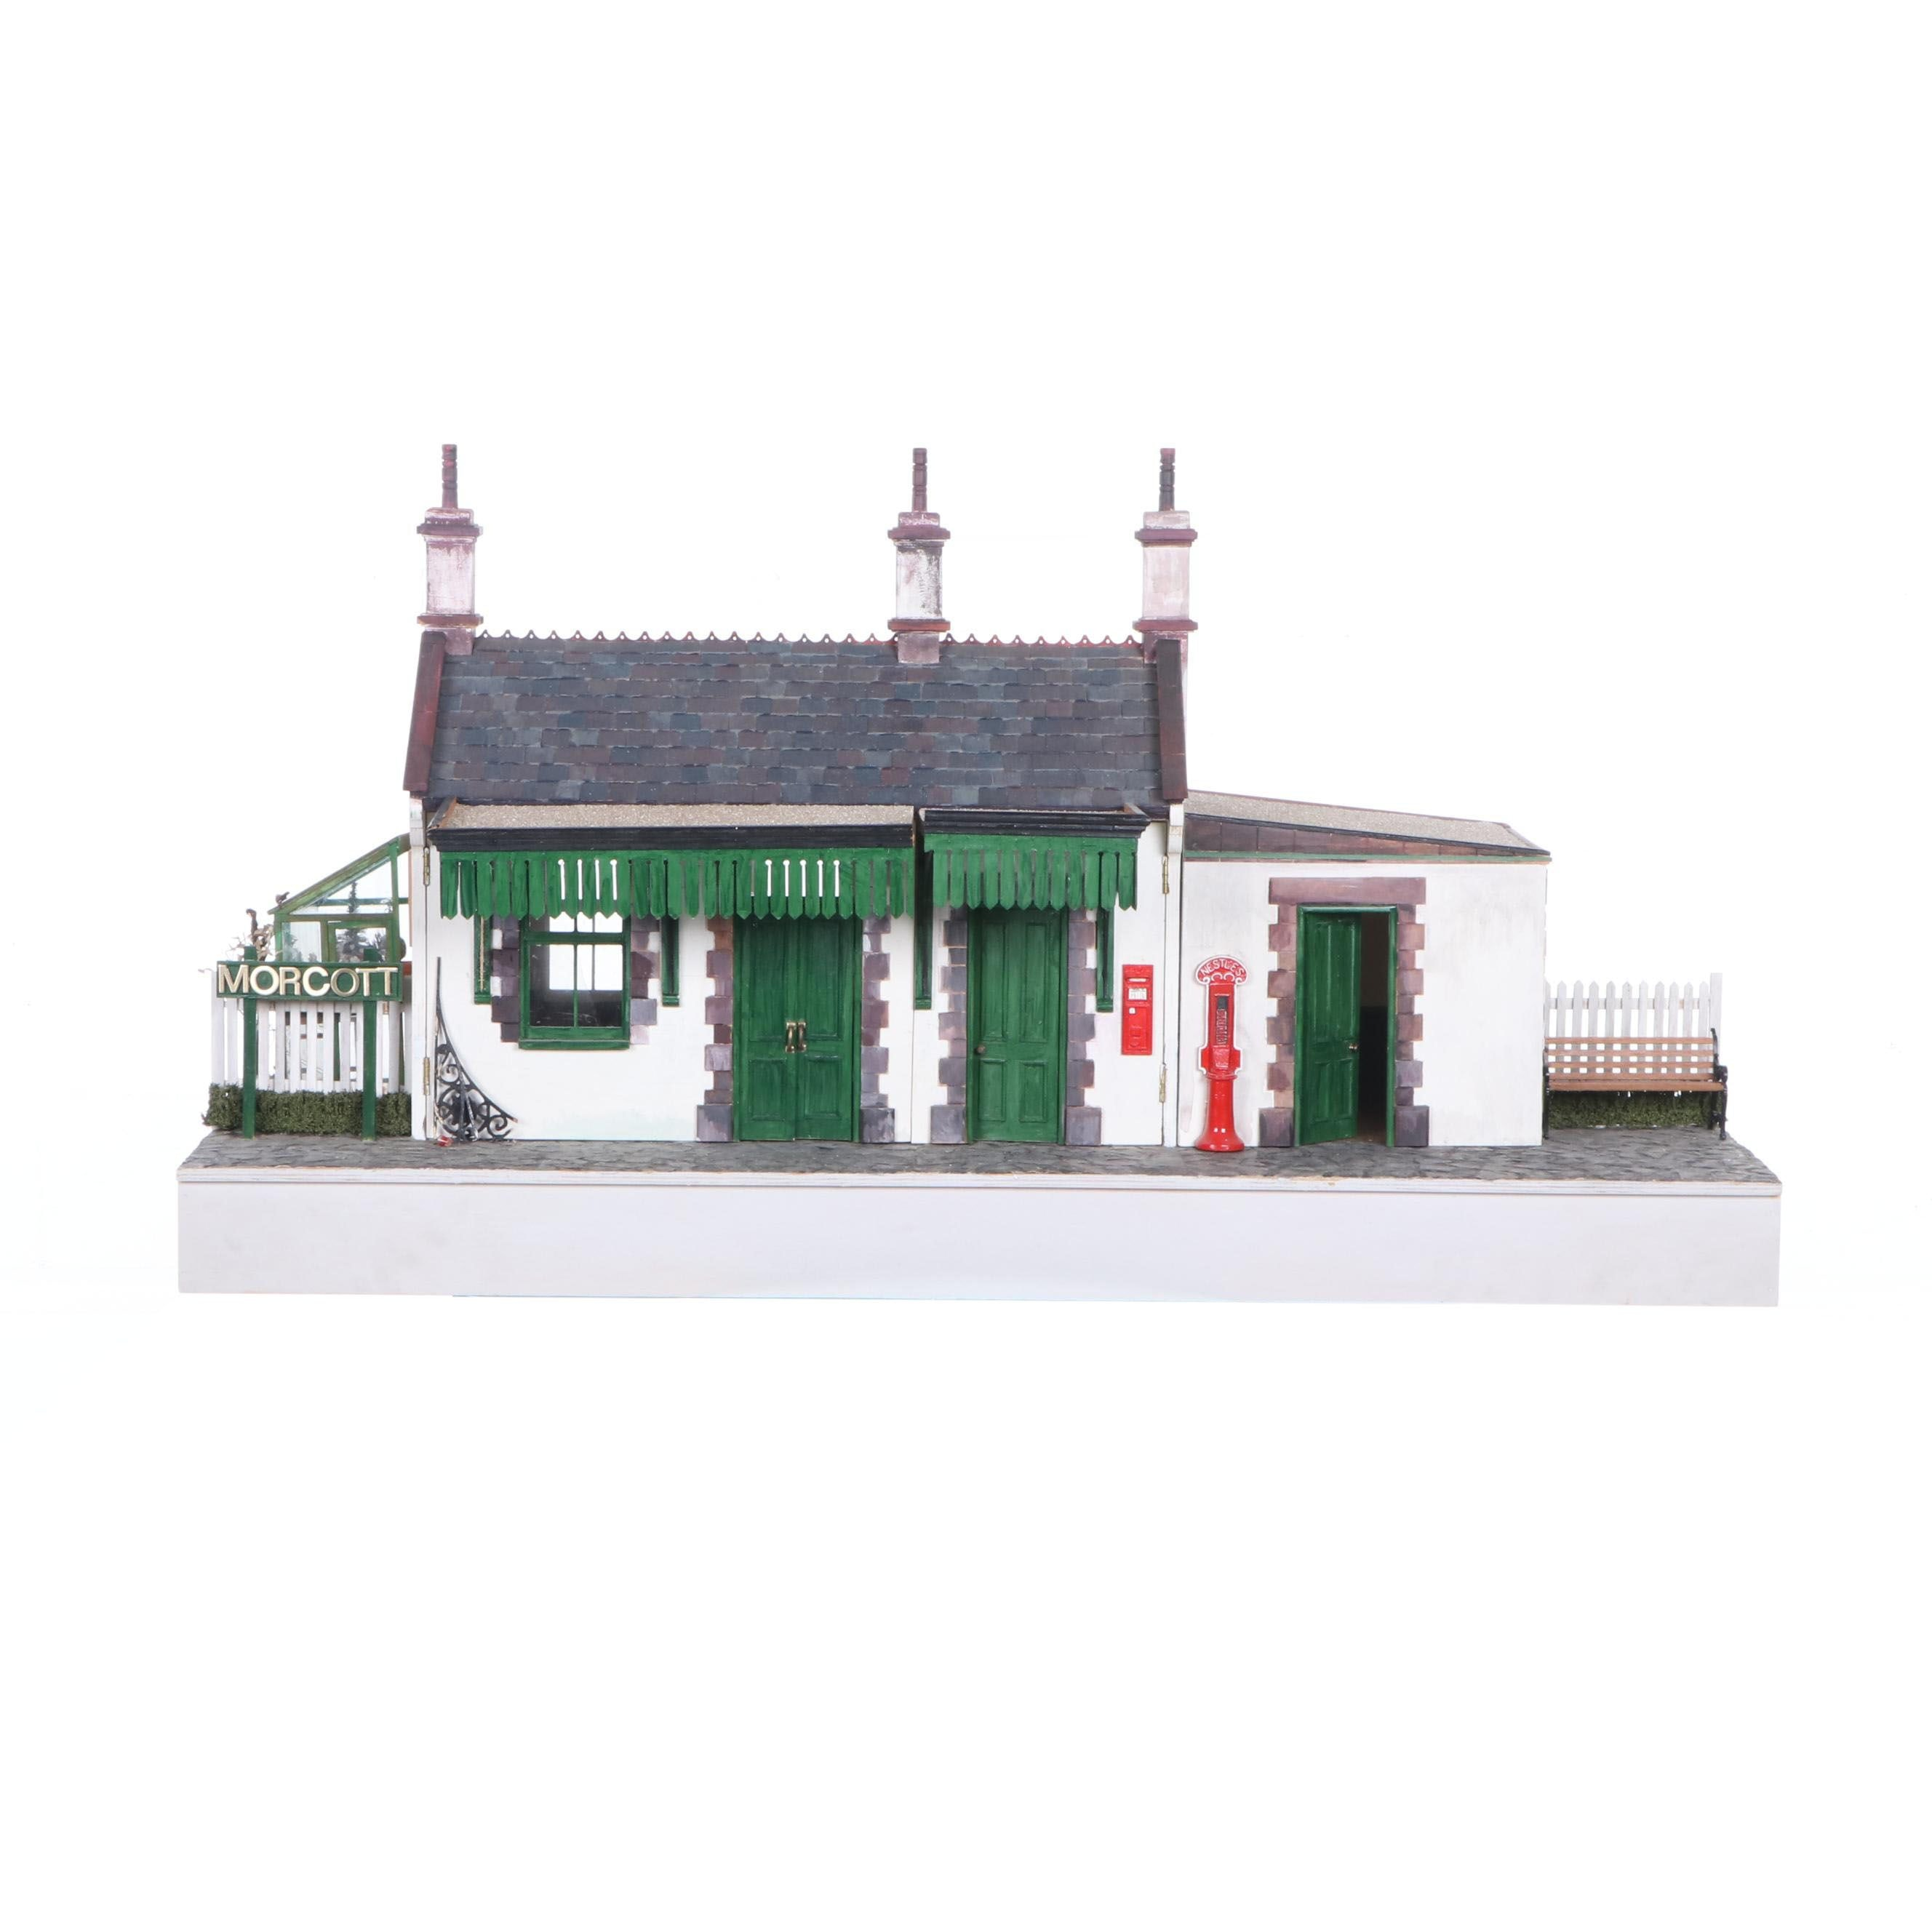 Morcott London Railway Station Dollhouse with Miniatures